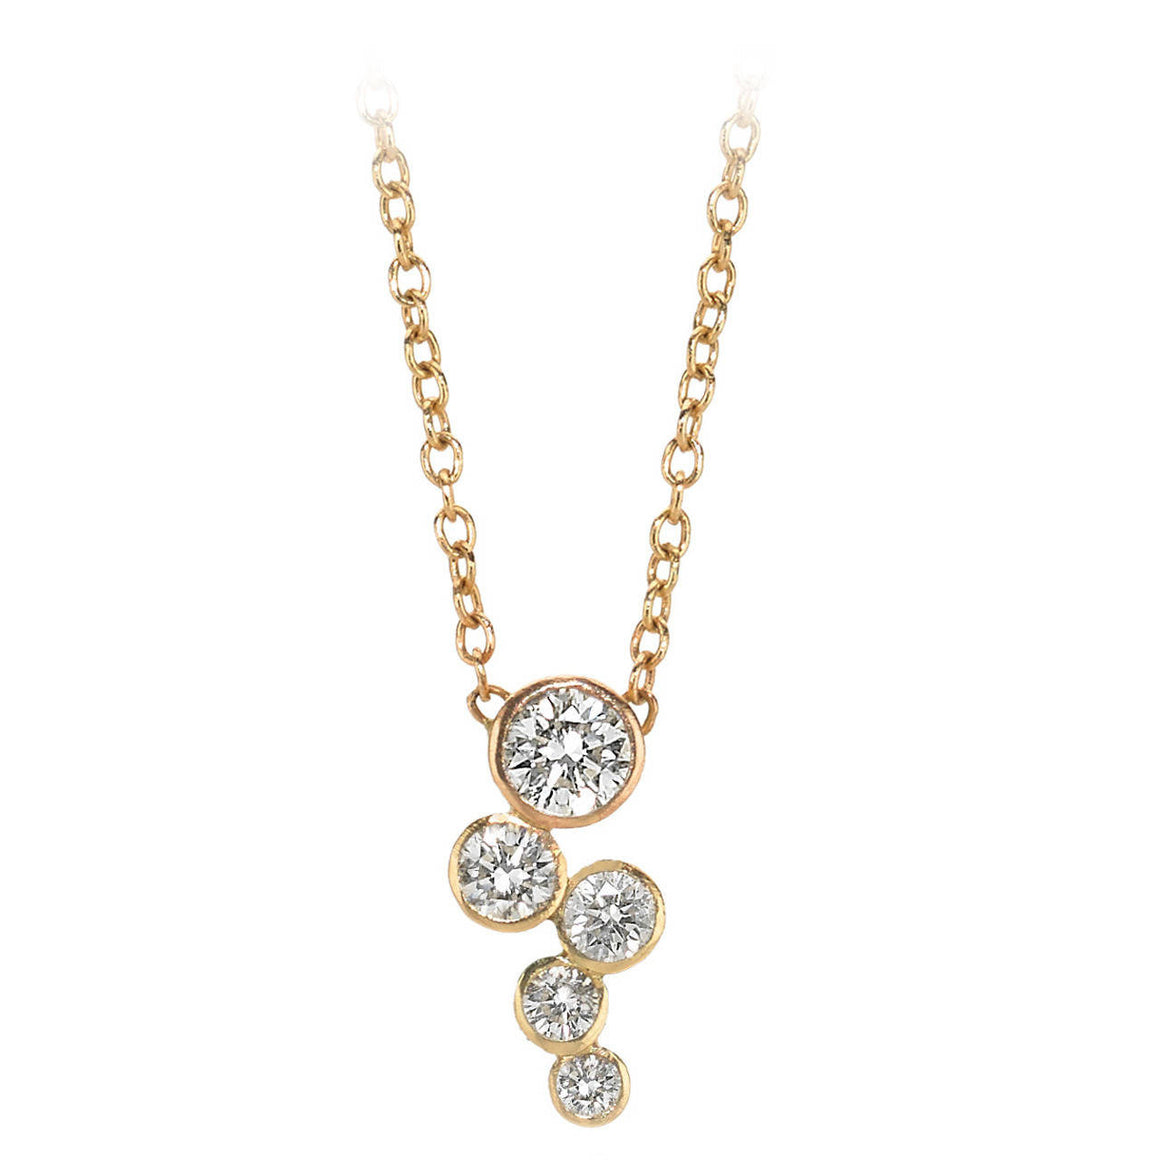 18 Karat Yellow Gold Diamond Cascade Necklace